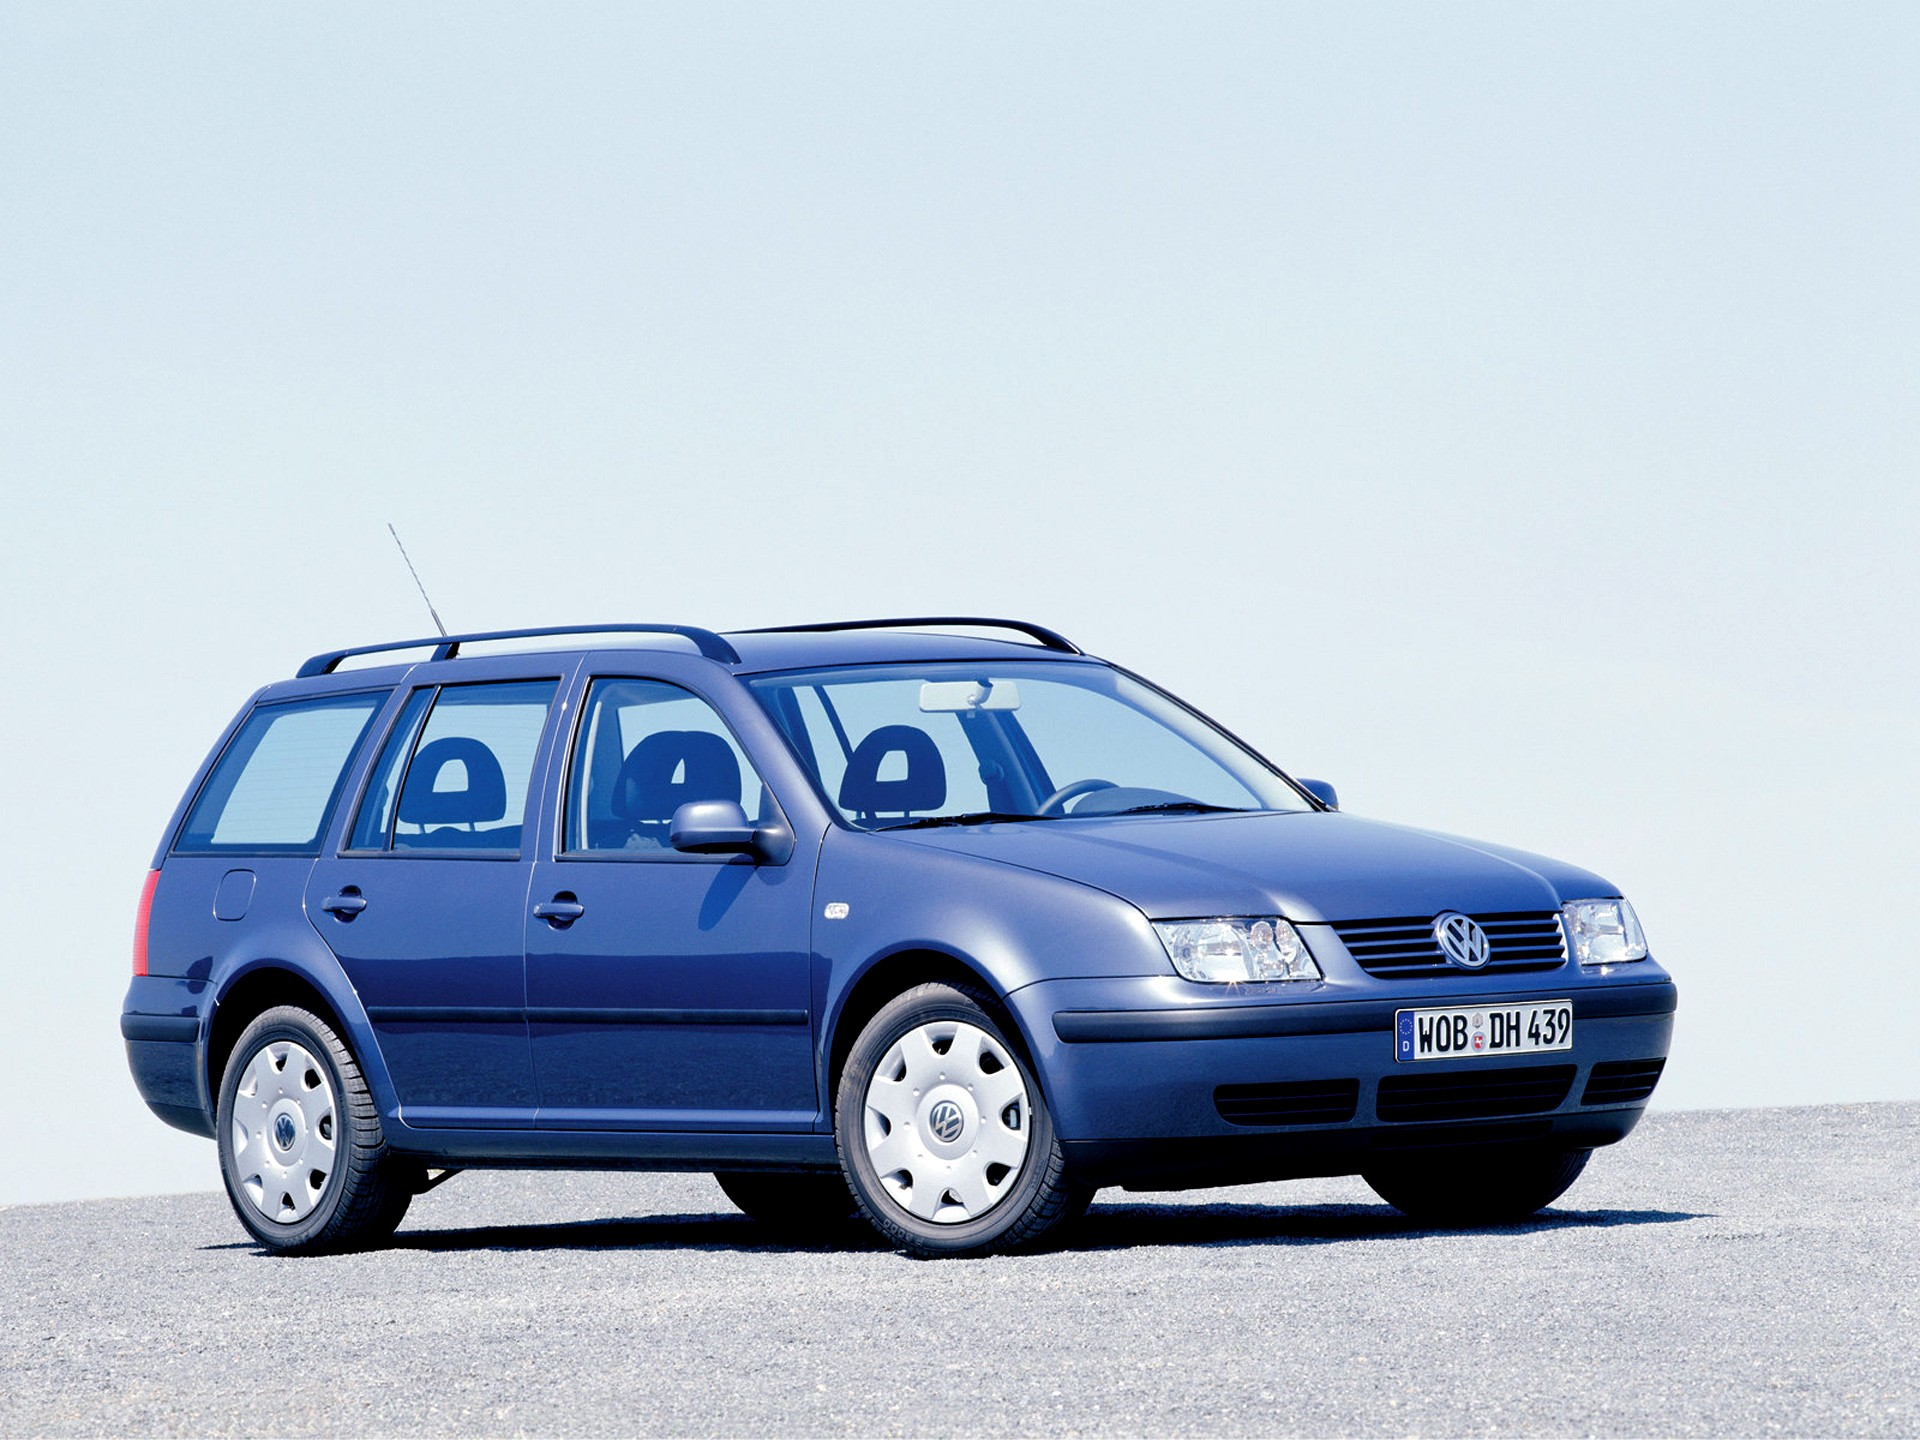 Maxresdefault in addition Maxresdefault as well Hqdefault additionally Volkswagen Polo Port Diagnostic Obd besides Hqdefault. on 2002 volkswagen jetta engine